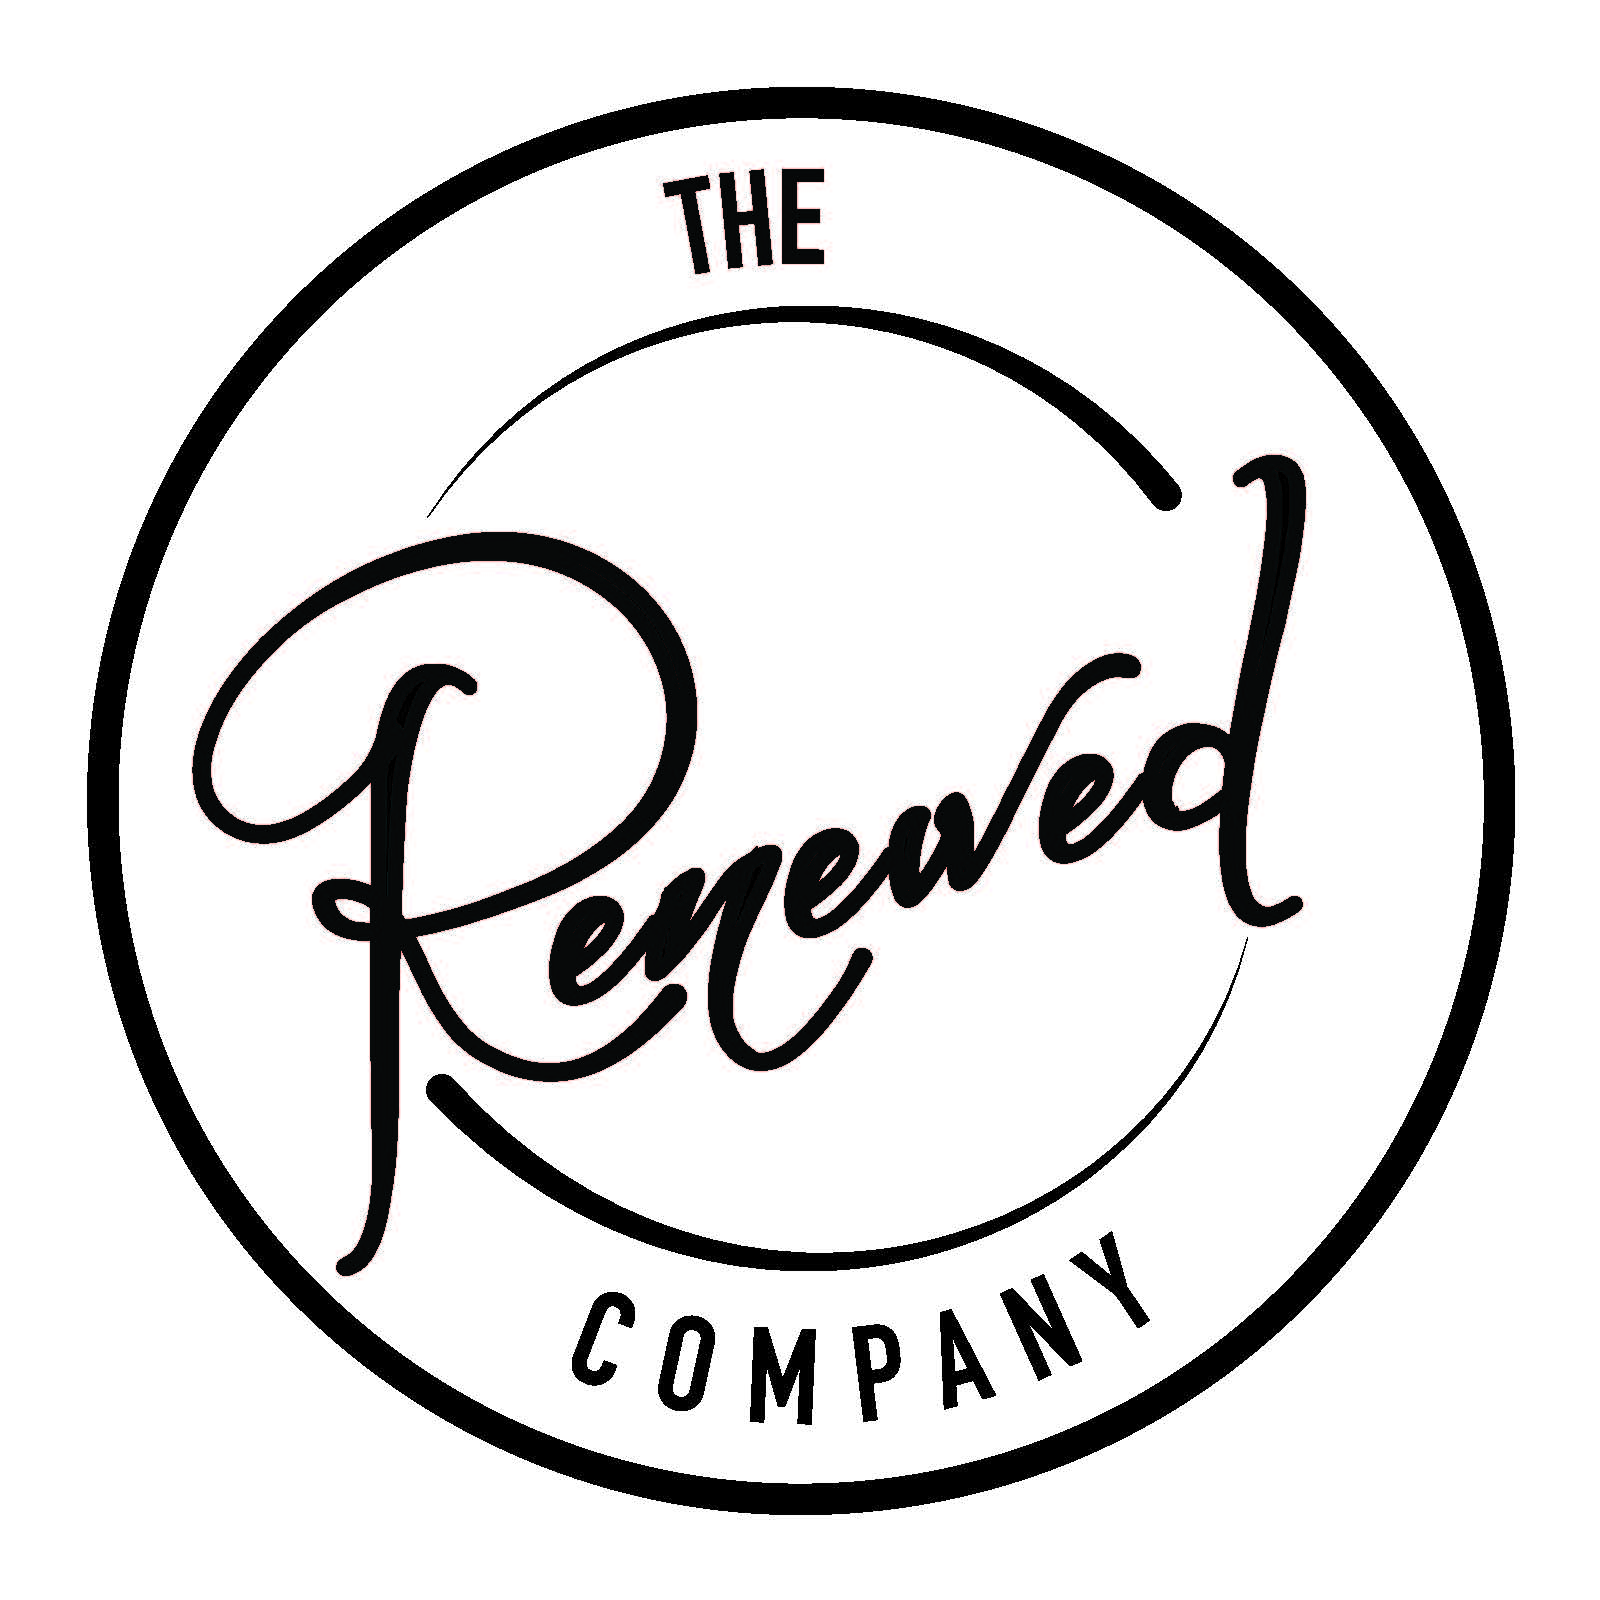 The Renewed Company